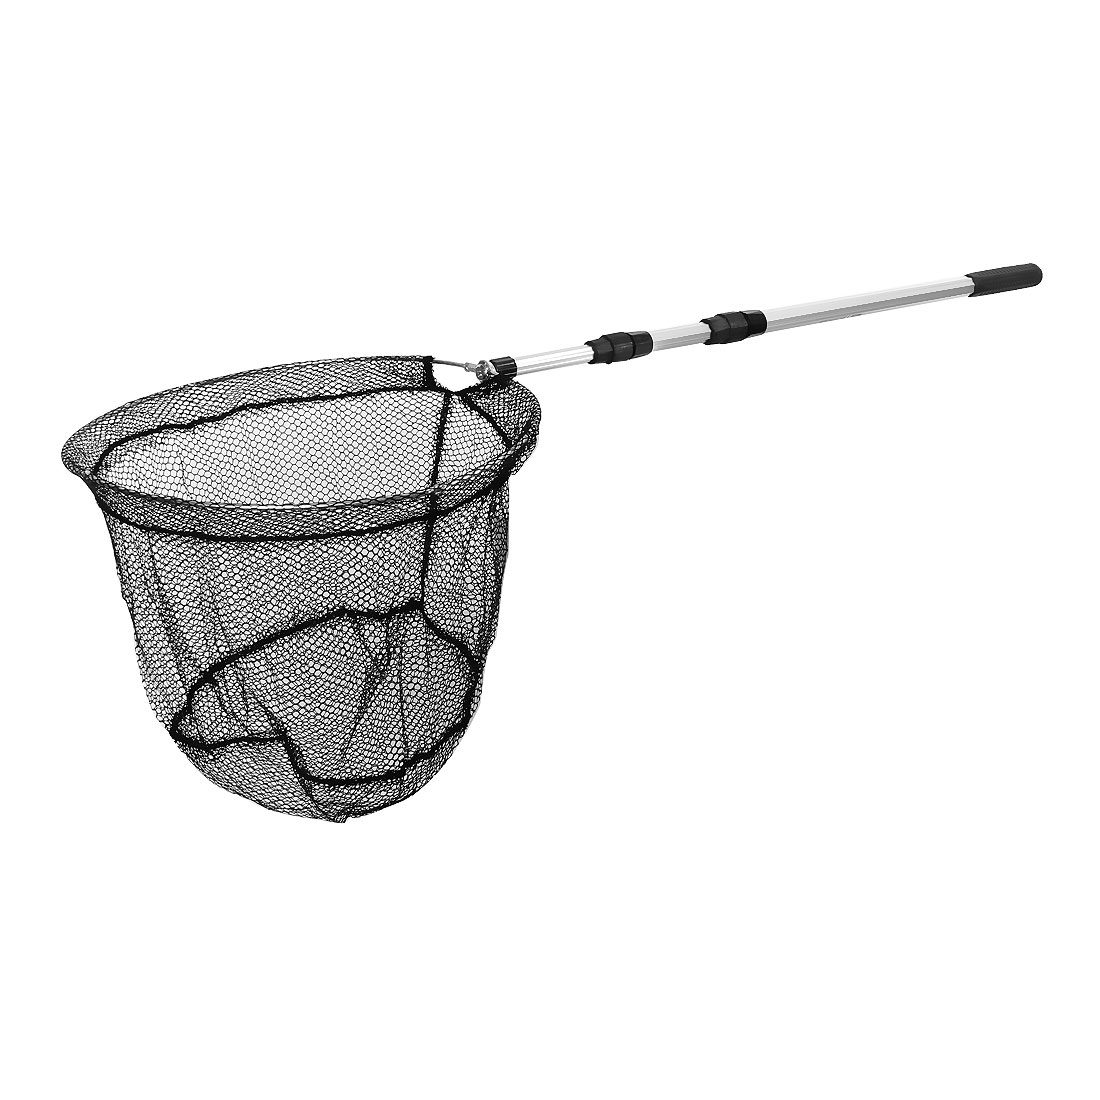 Telescoping Aluminium Handle Foldable Fishing Landing Dip Net 138cm 3 Sections